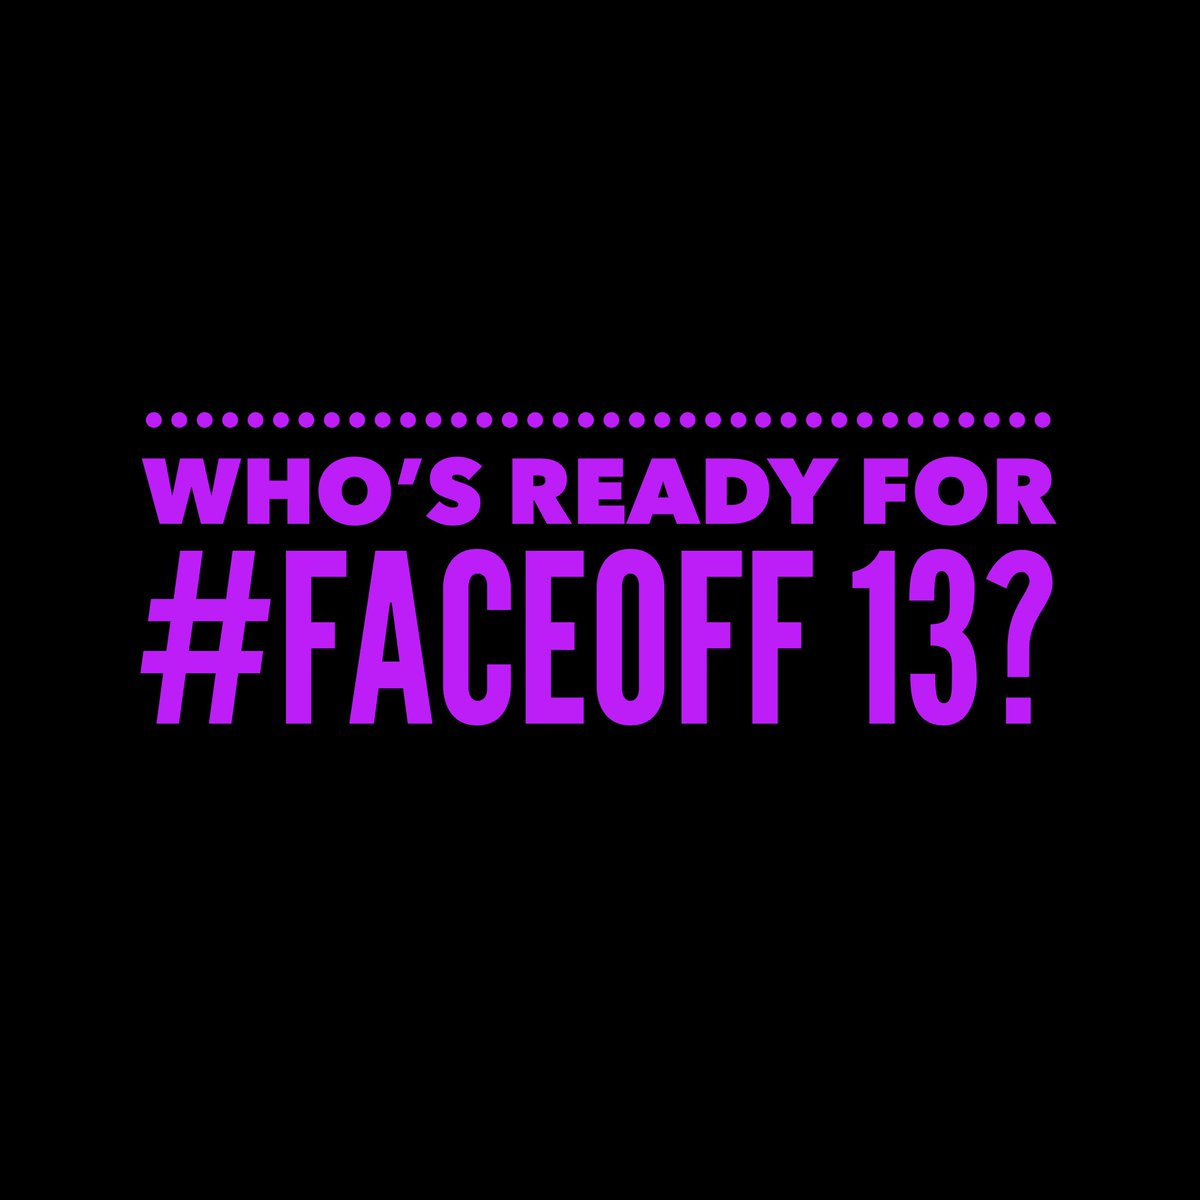 Who's ready?  #FaceOff #FaceOff2018 https://t.co/OS9fKBHsXY